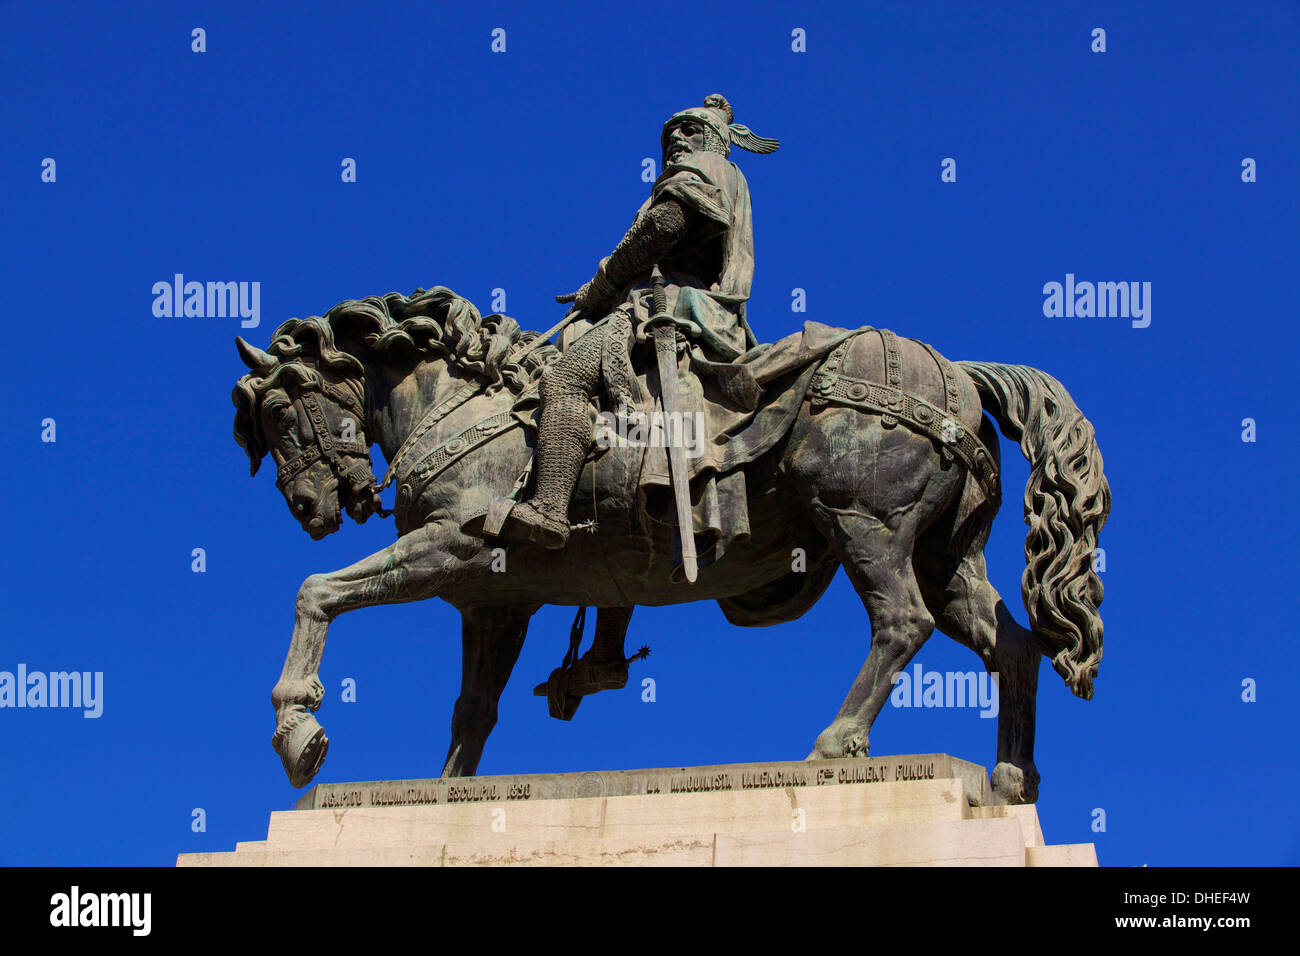 Statue of King Jaume I, Valencia, Spain, Europe - Stock Image